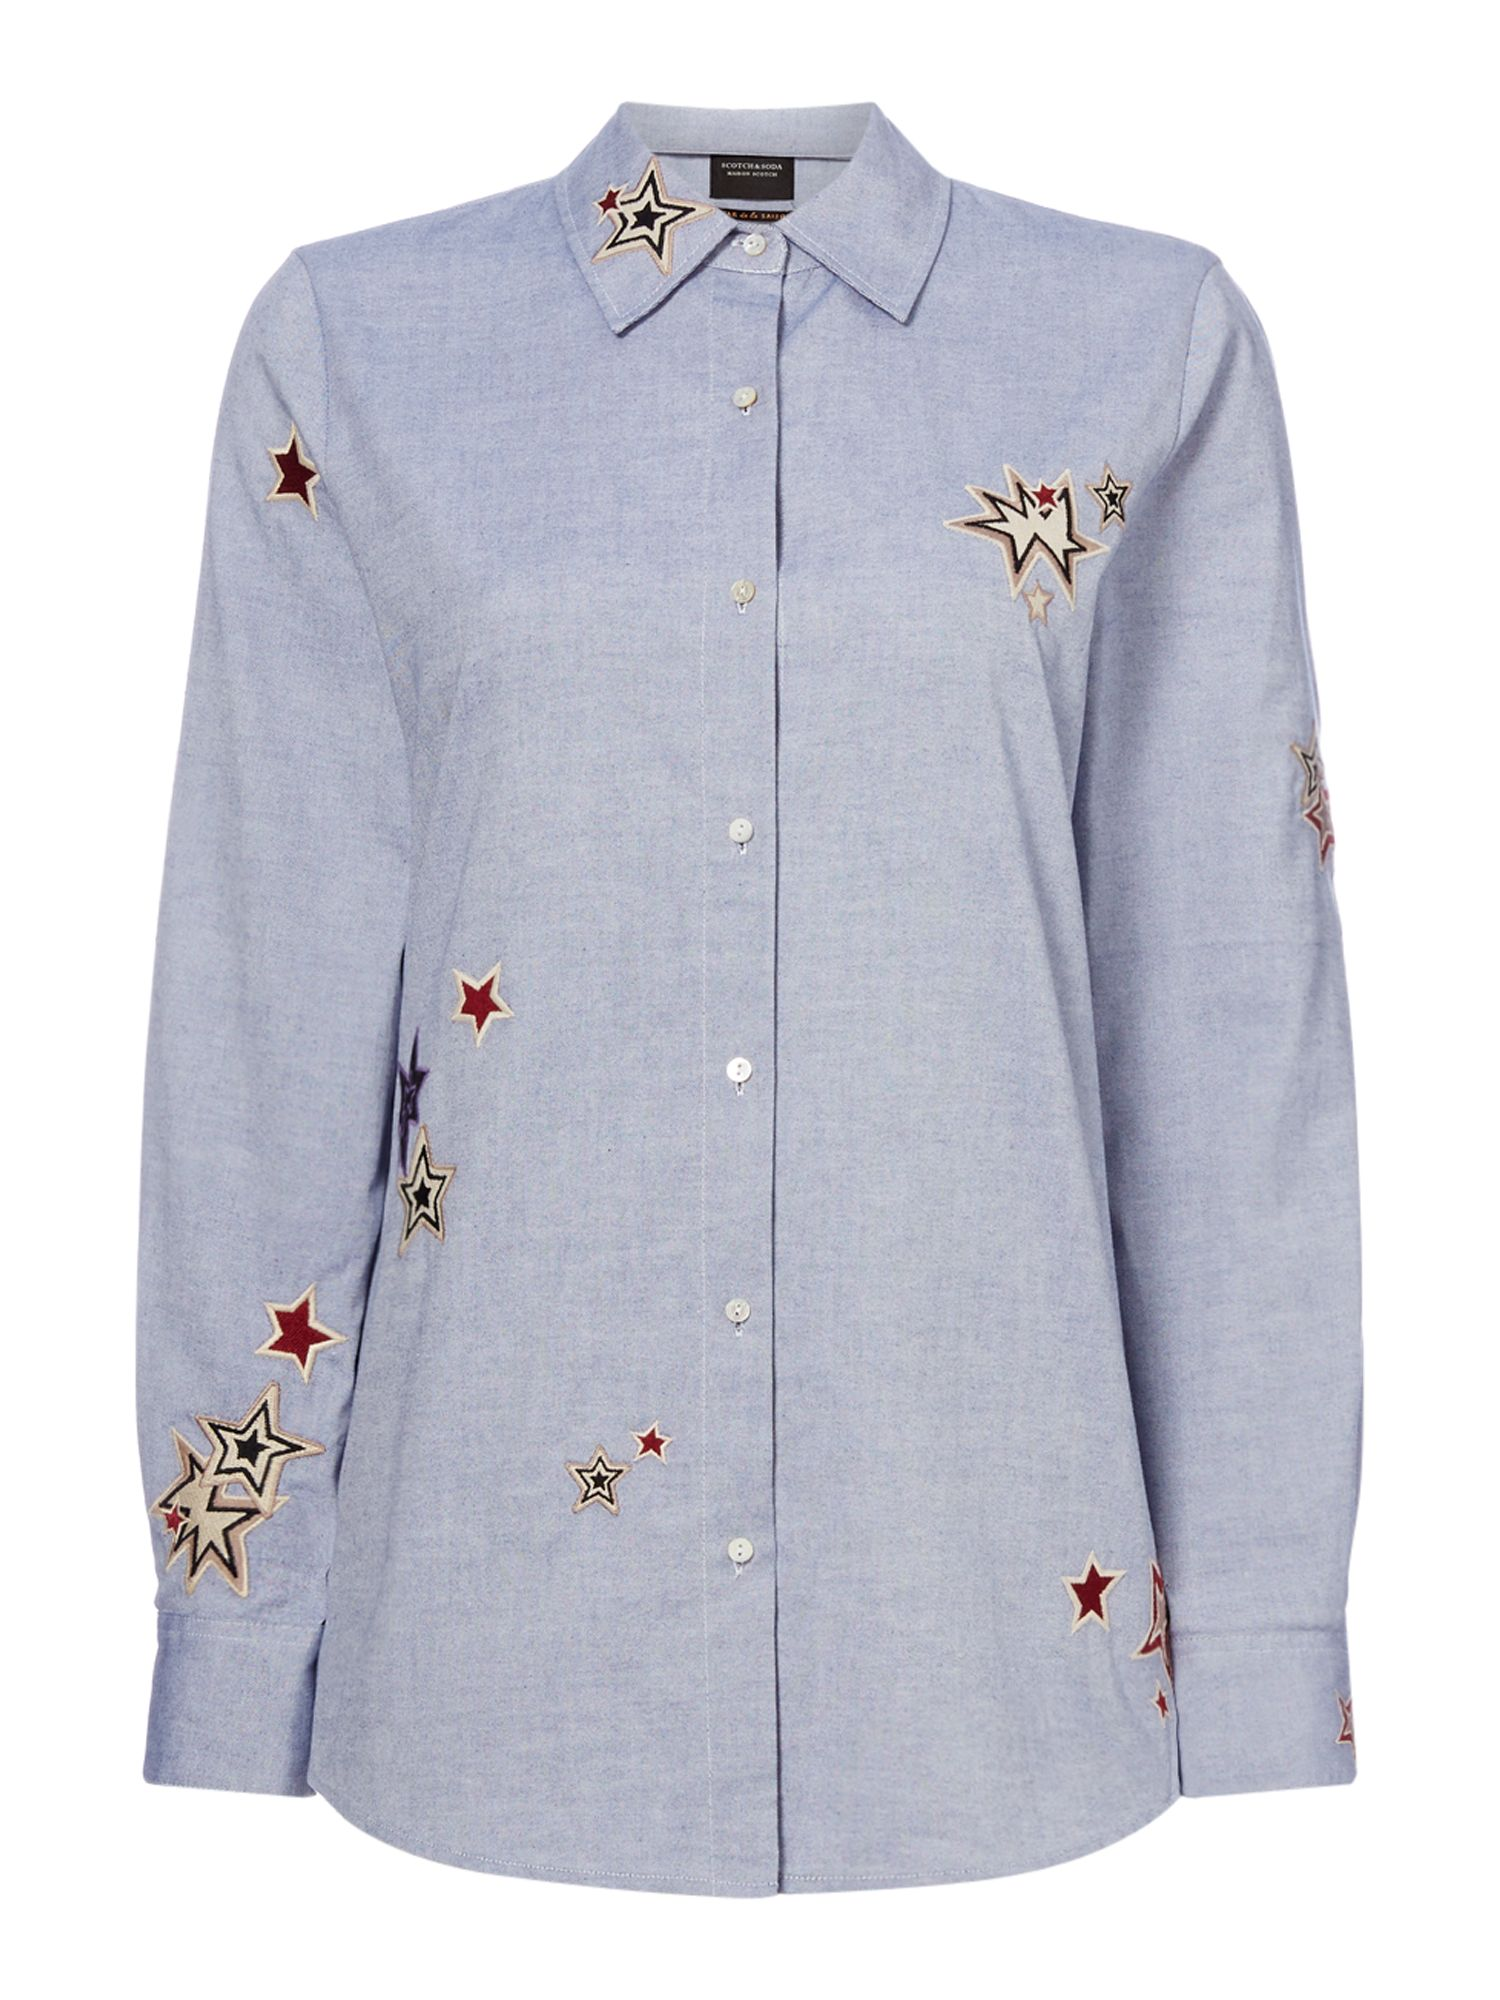 Maison Scotch star embroidery shirt, Light Blue